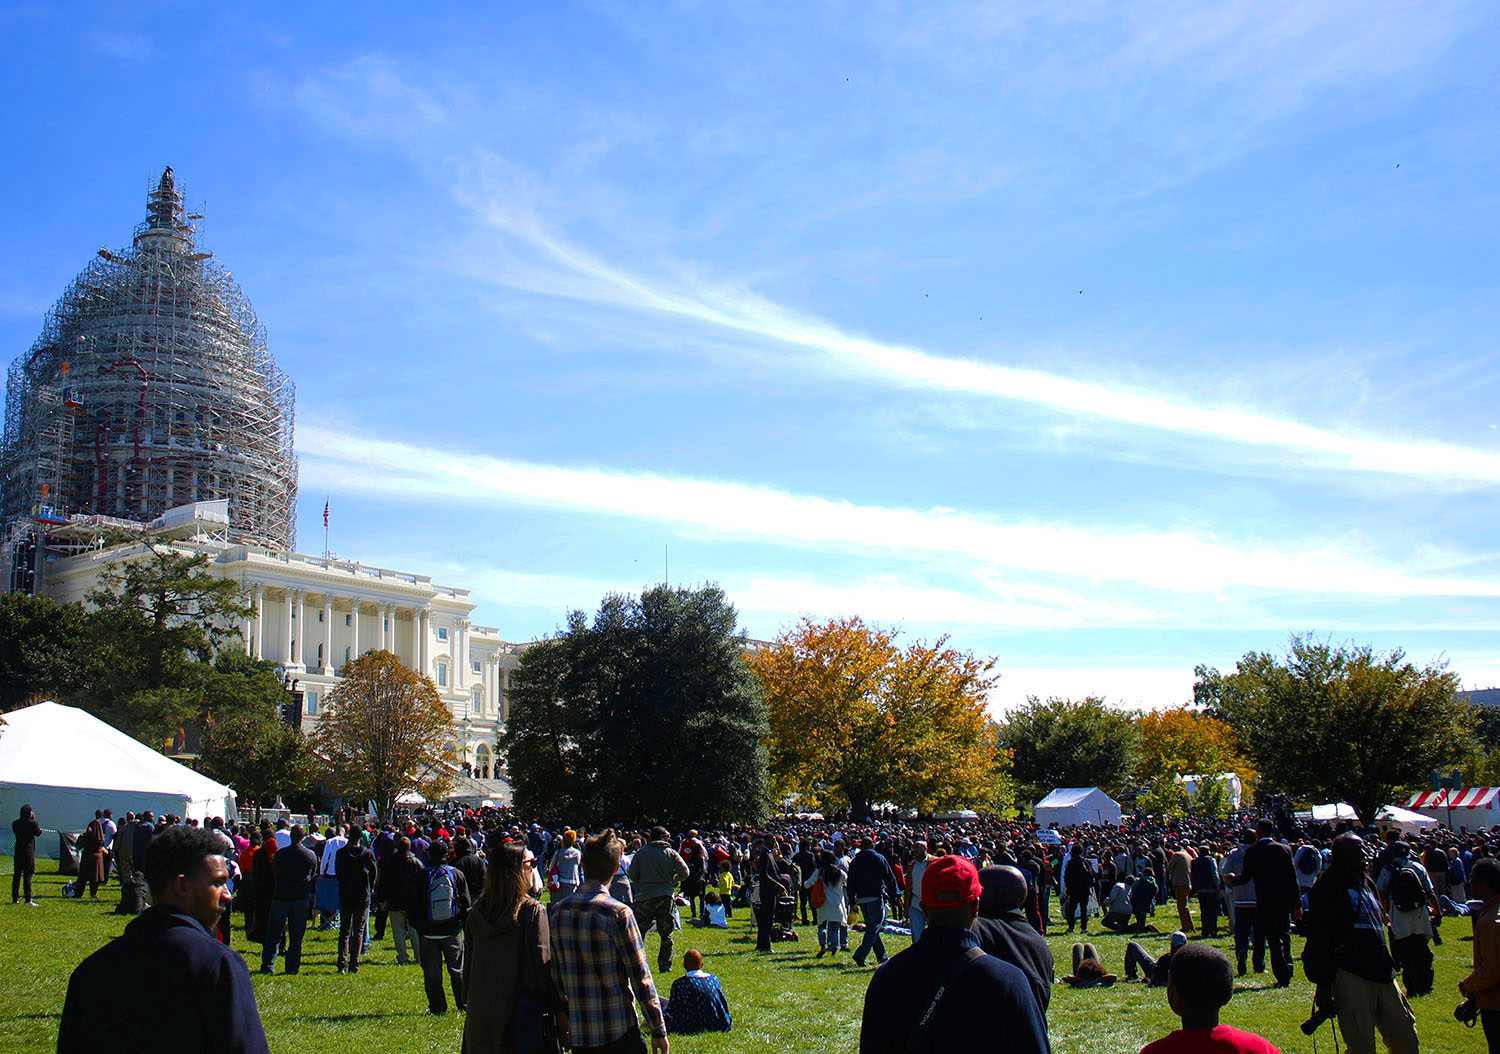 CW_8-Million-Man-March-on-Capitol_use.jpg?time=1574291400